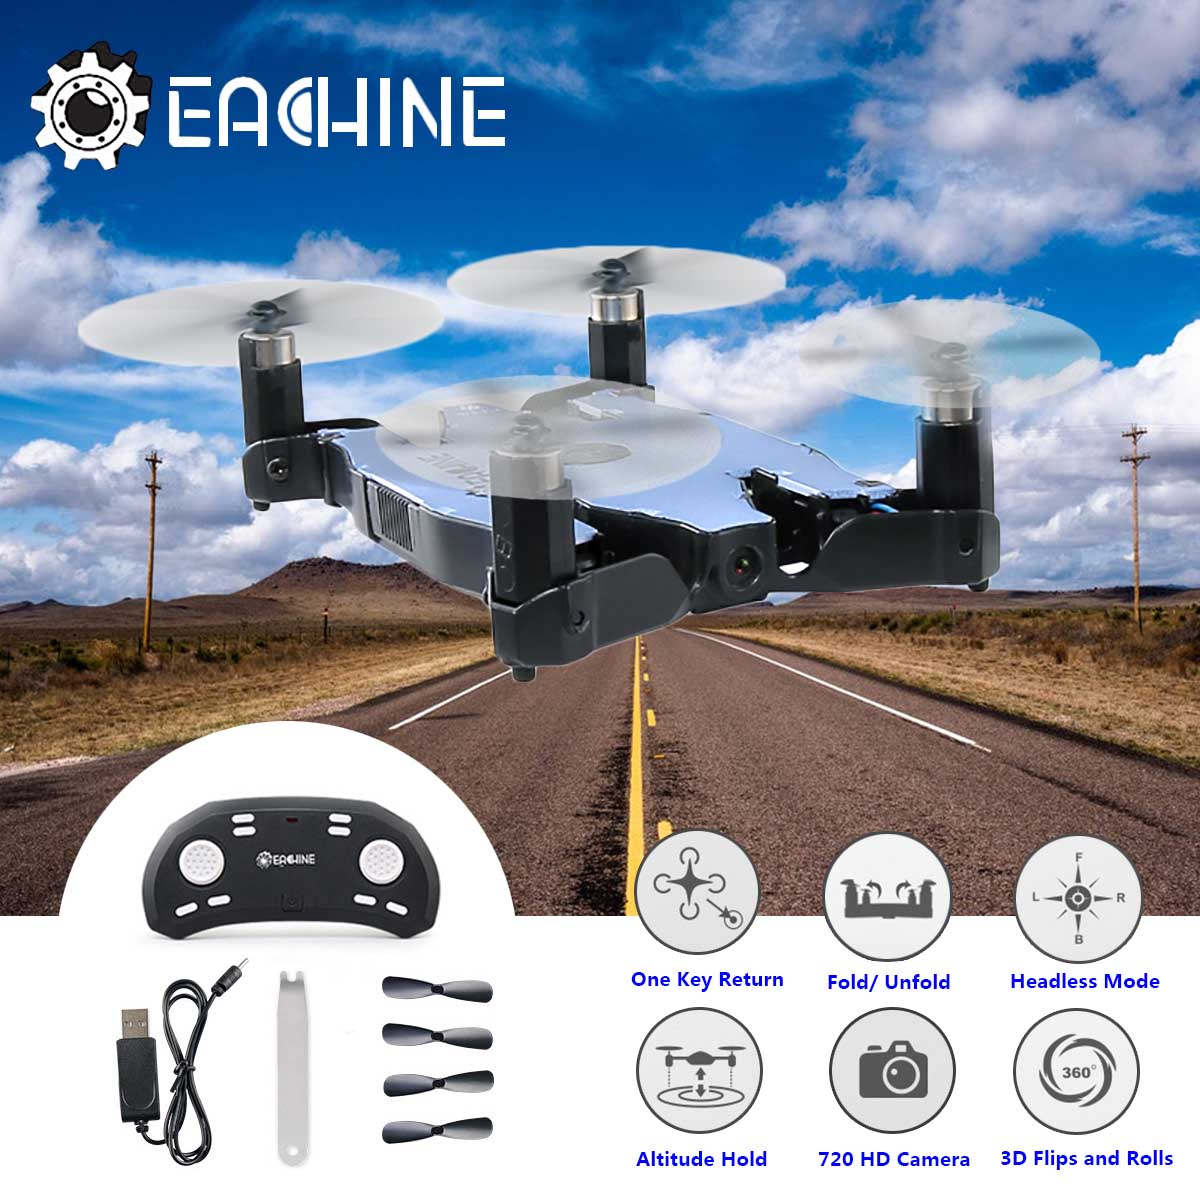 Hot Sale Eachine E57 WiFi FPV With 720P HD Camera Auto Foldable Arm Altitude Hold RC Quadcopter Selfie Drone VS JJRC H49 jjr c jjrc h39wh wifi fpv with 720p camera high hold foldable arm app rc drones fpv quadcopter helicopter toy rtf vs h37 h31